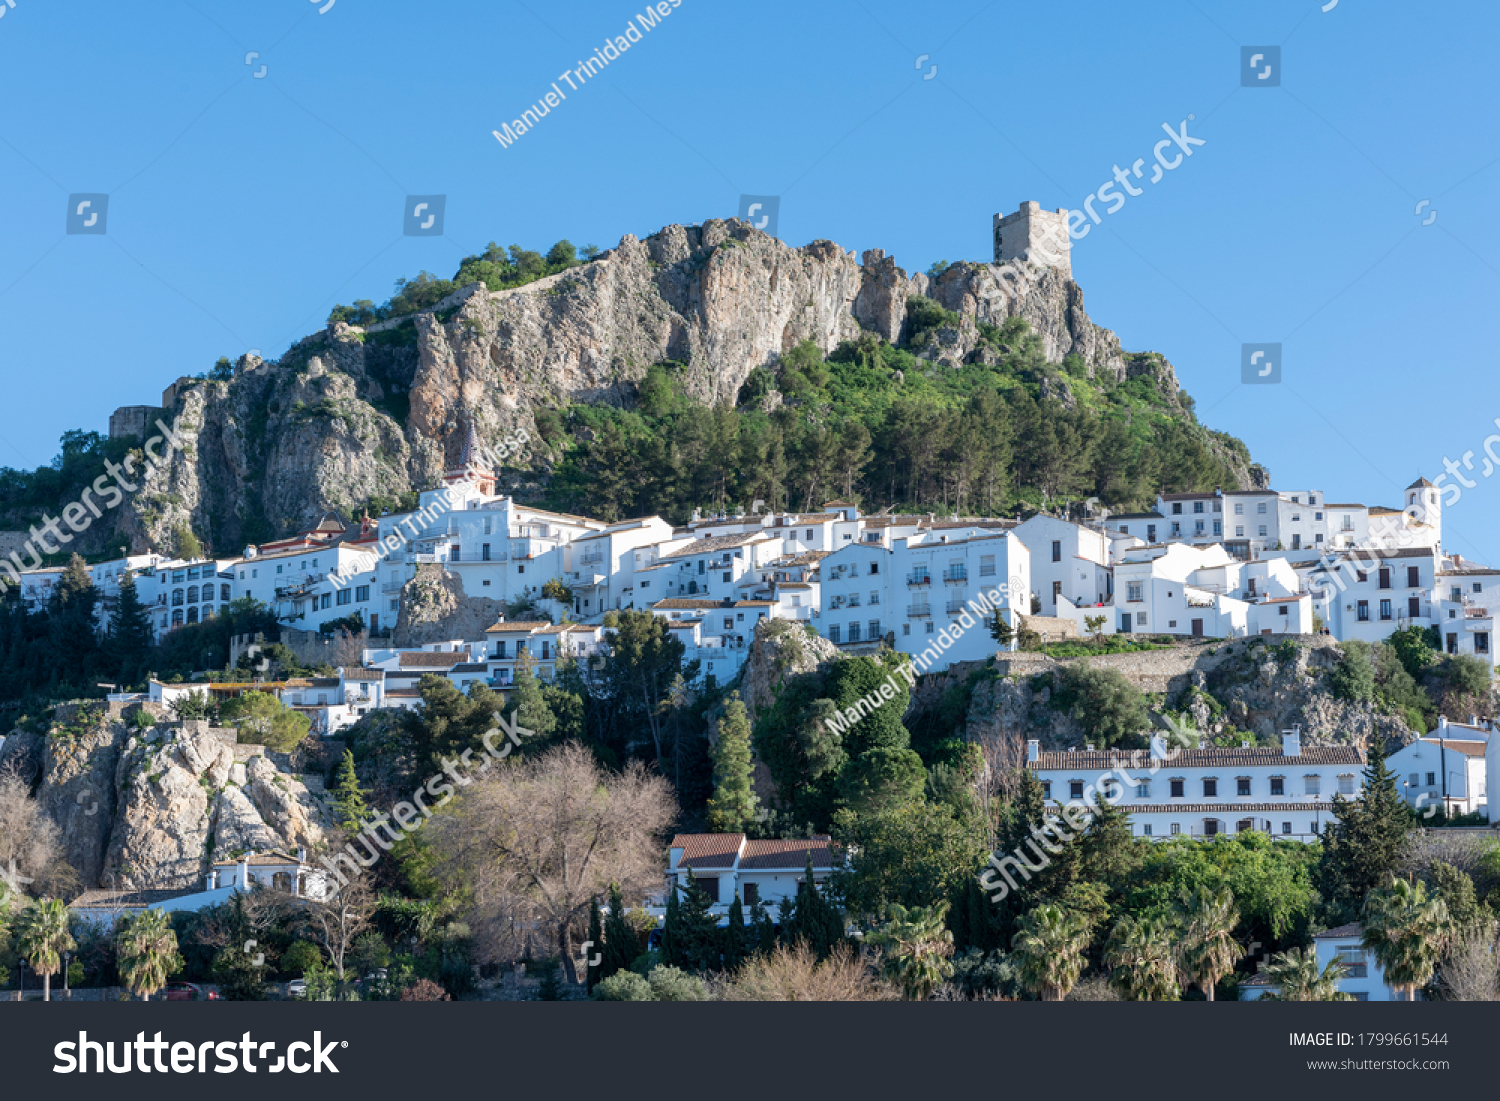 Zahara de la Sierra, Spanish municipality in the province of Cadiz, in the mountains of Andalusia